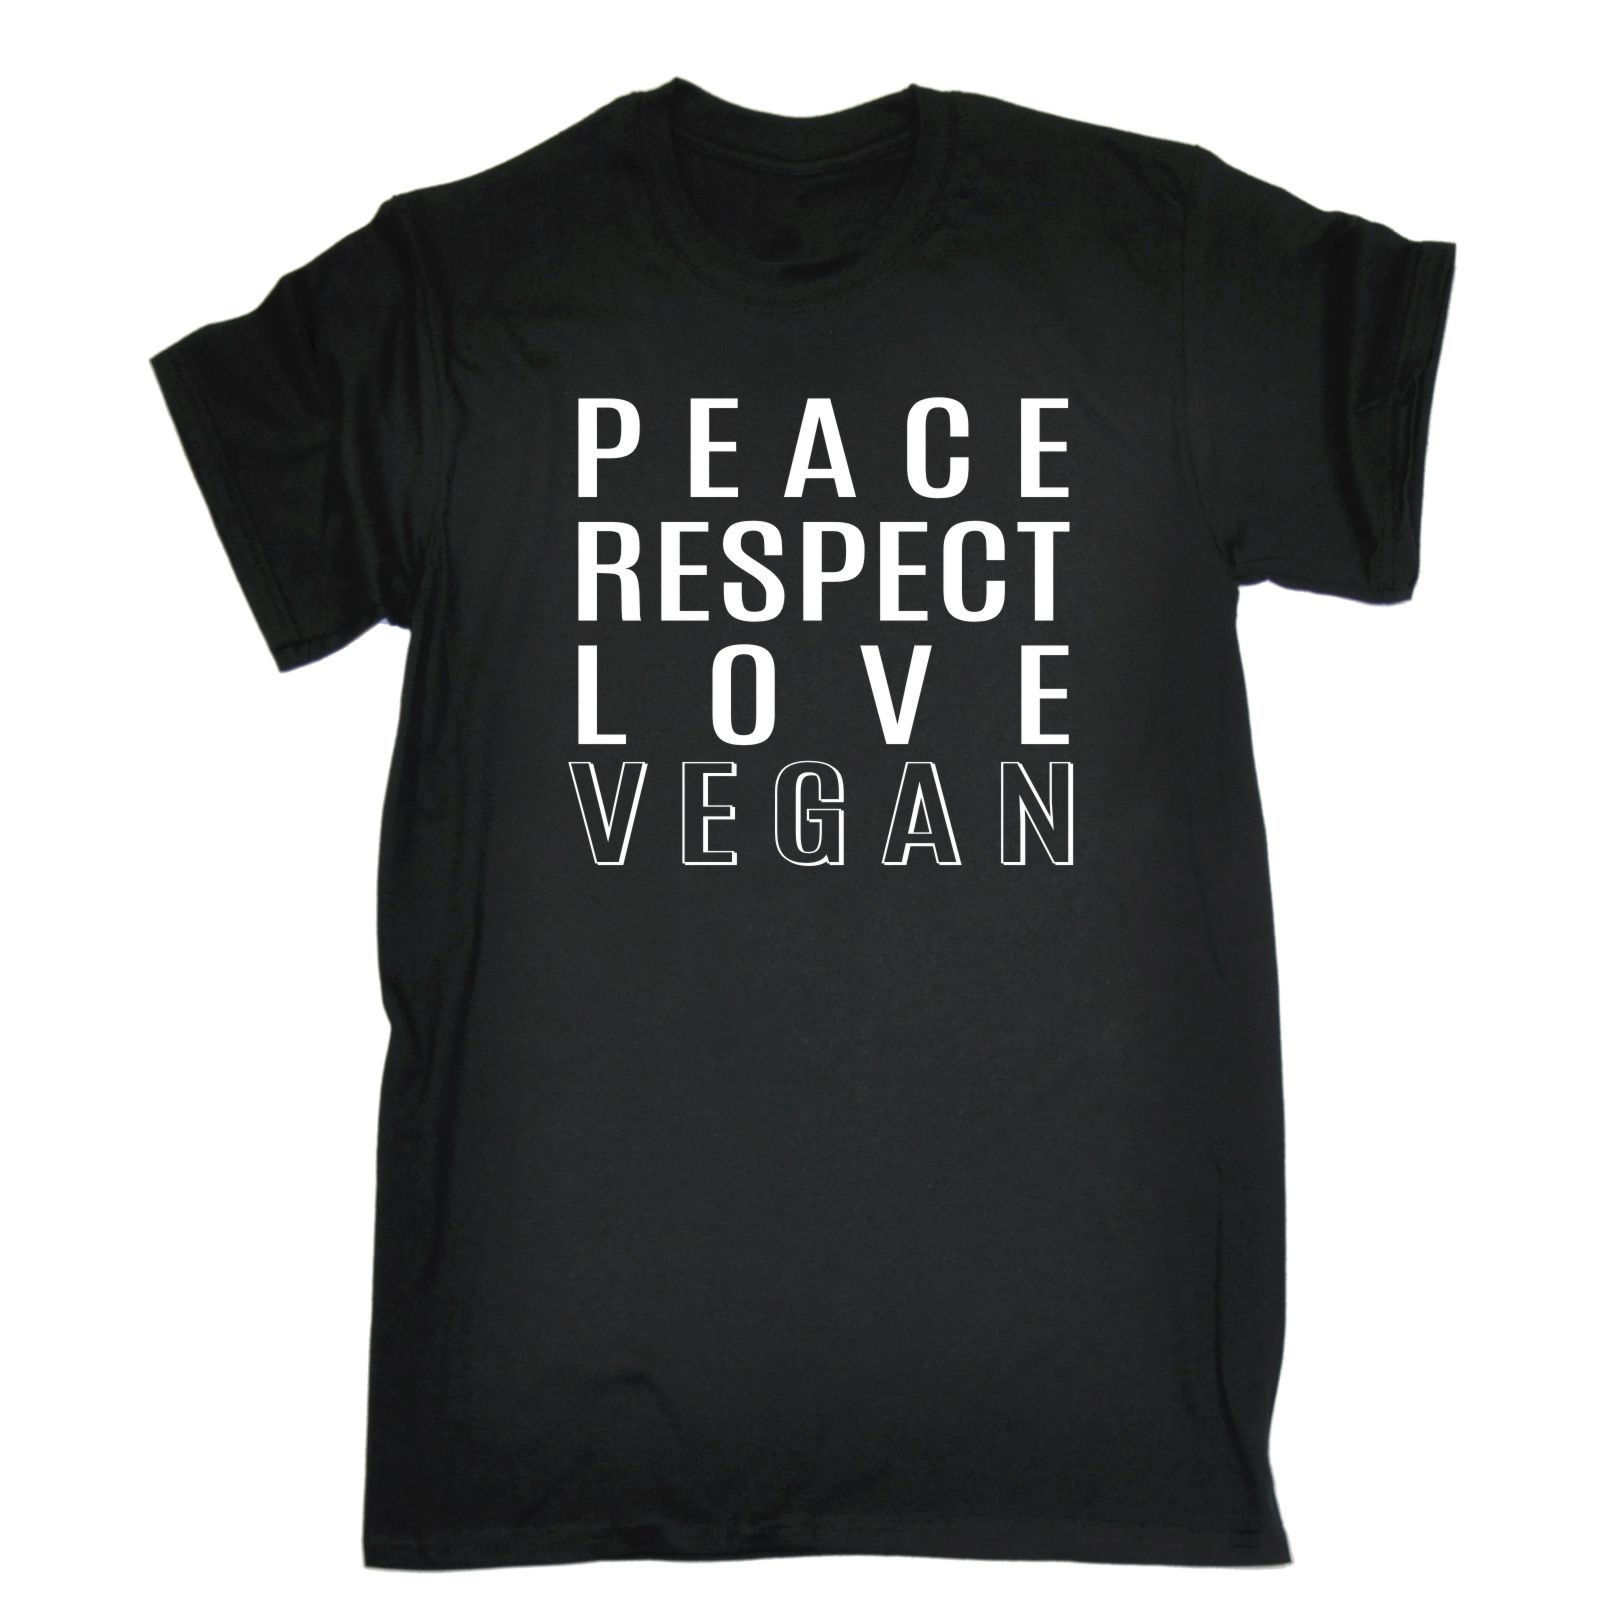 PEACE RESPECT LOVE VEGAN T-SHIRT Vegan Vegetarian Hippie Hipster Birthday Gift Loose Cotton T-Shirts For Men Cool Tops T Shirts